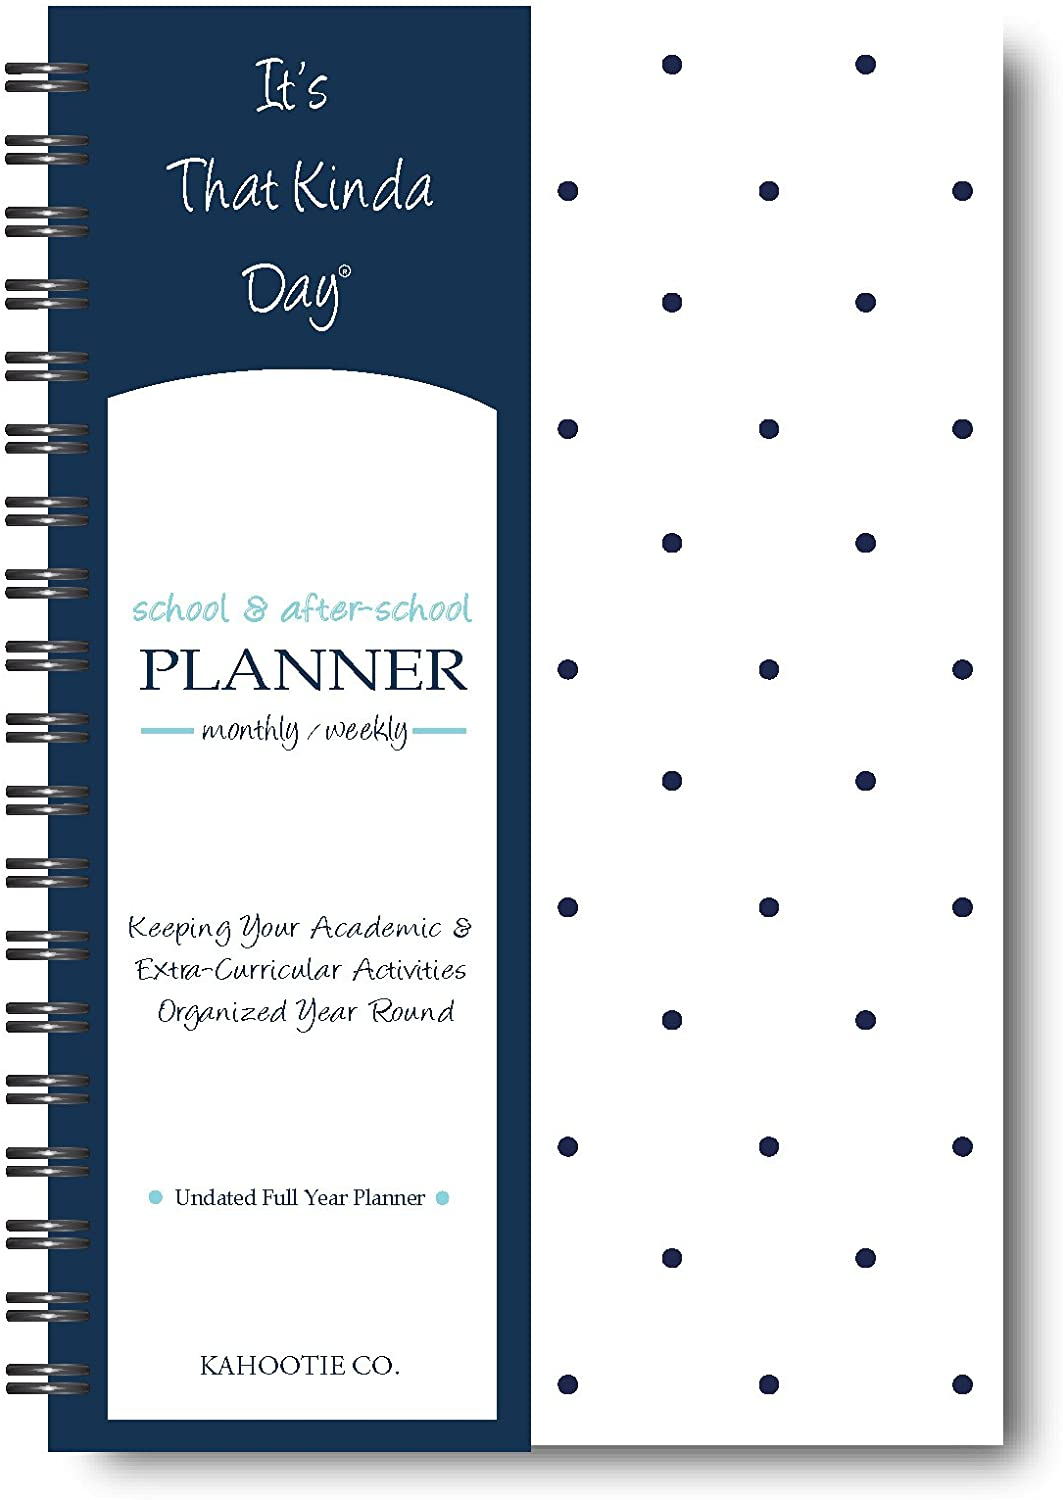 It's That Kinda Day- School & After-School Planner 6x9 (Navy Polka DOTS)